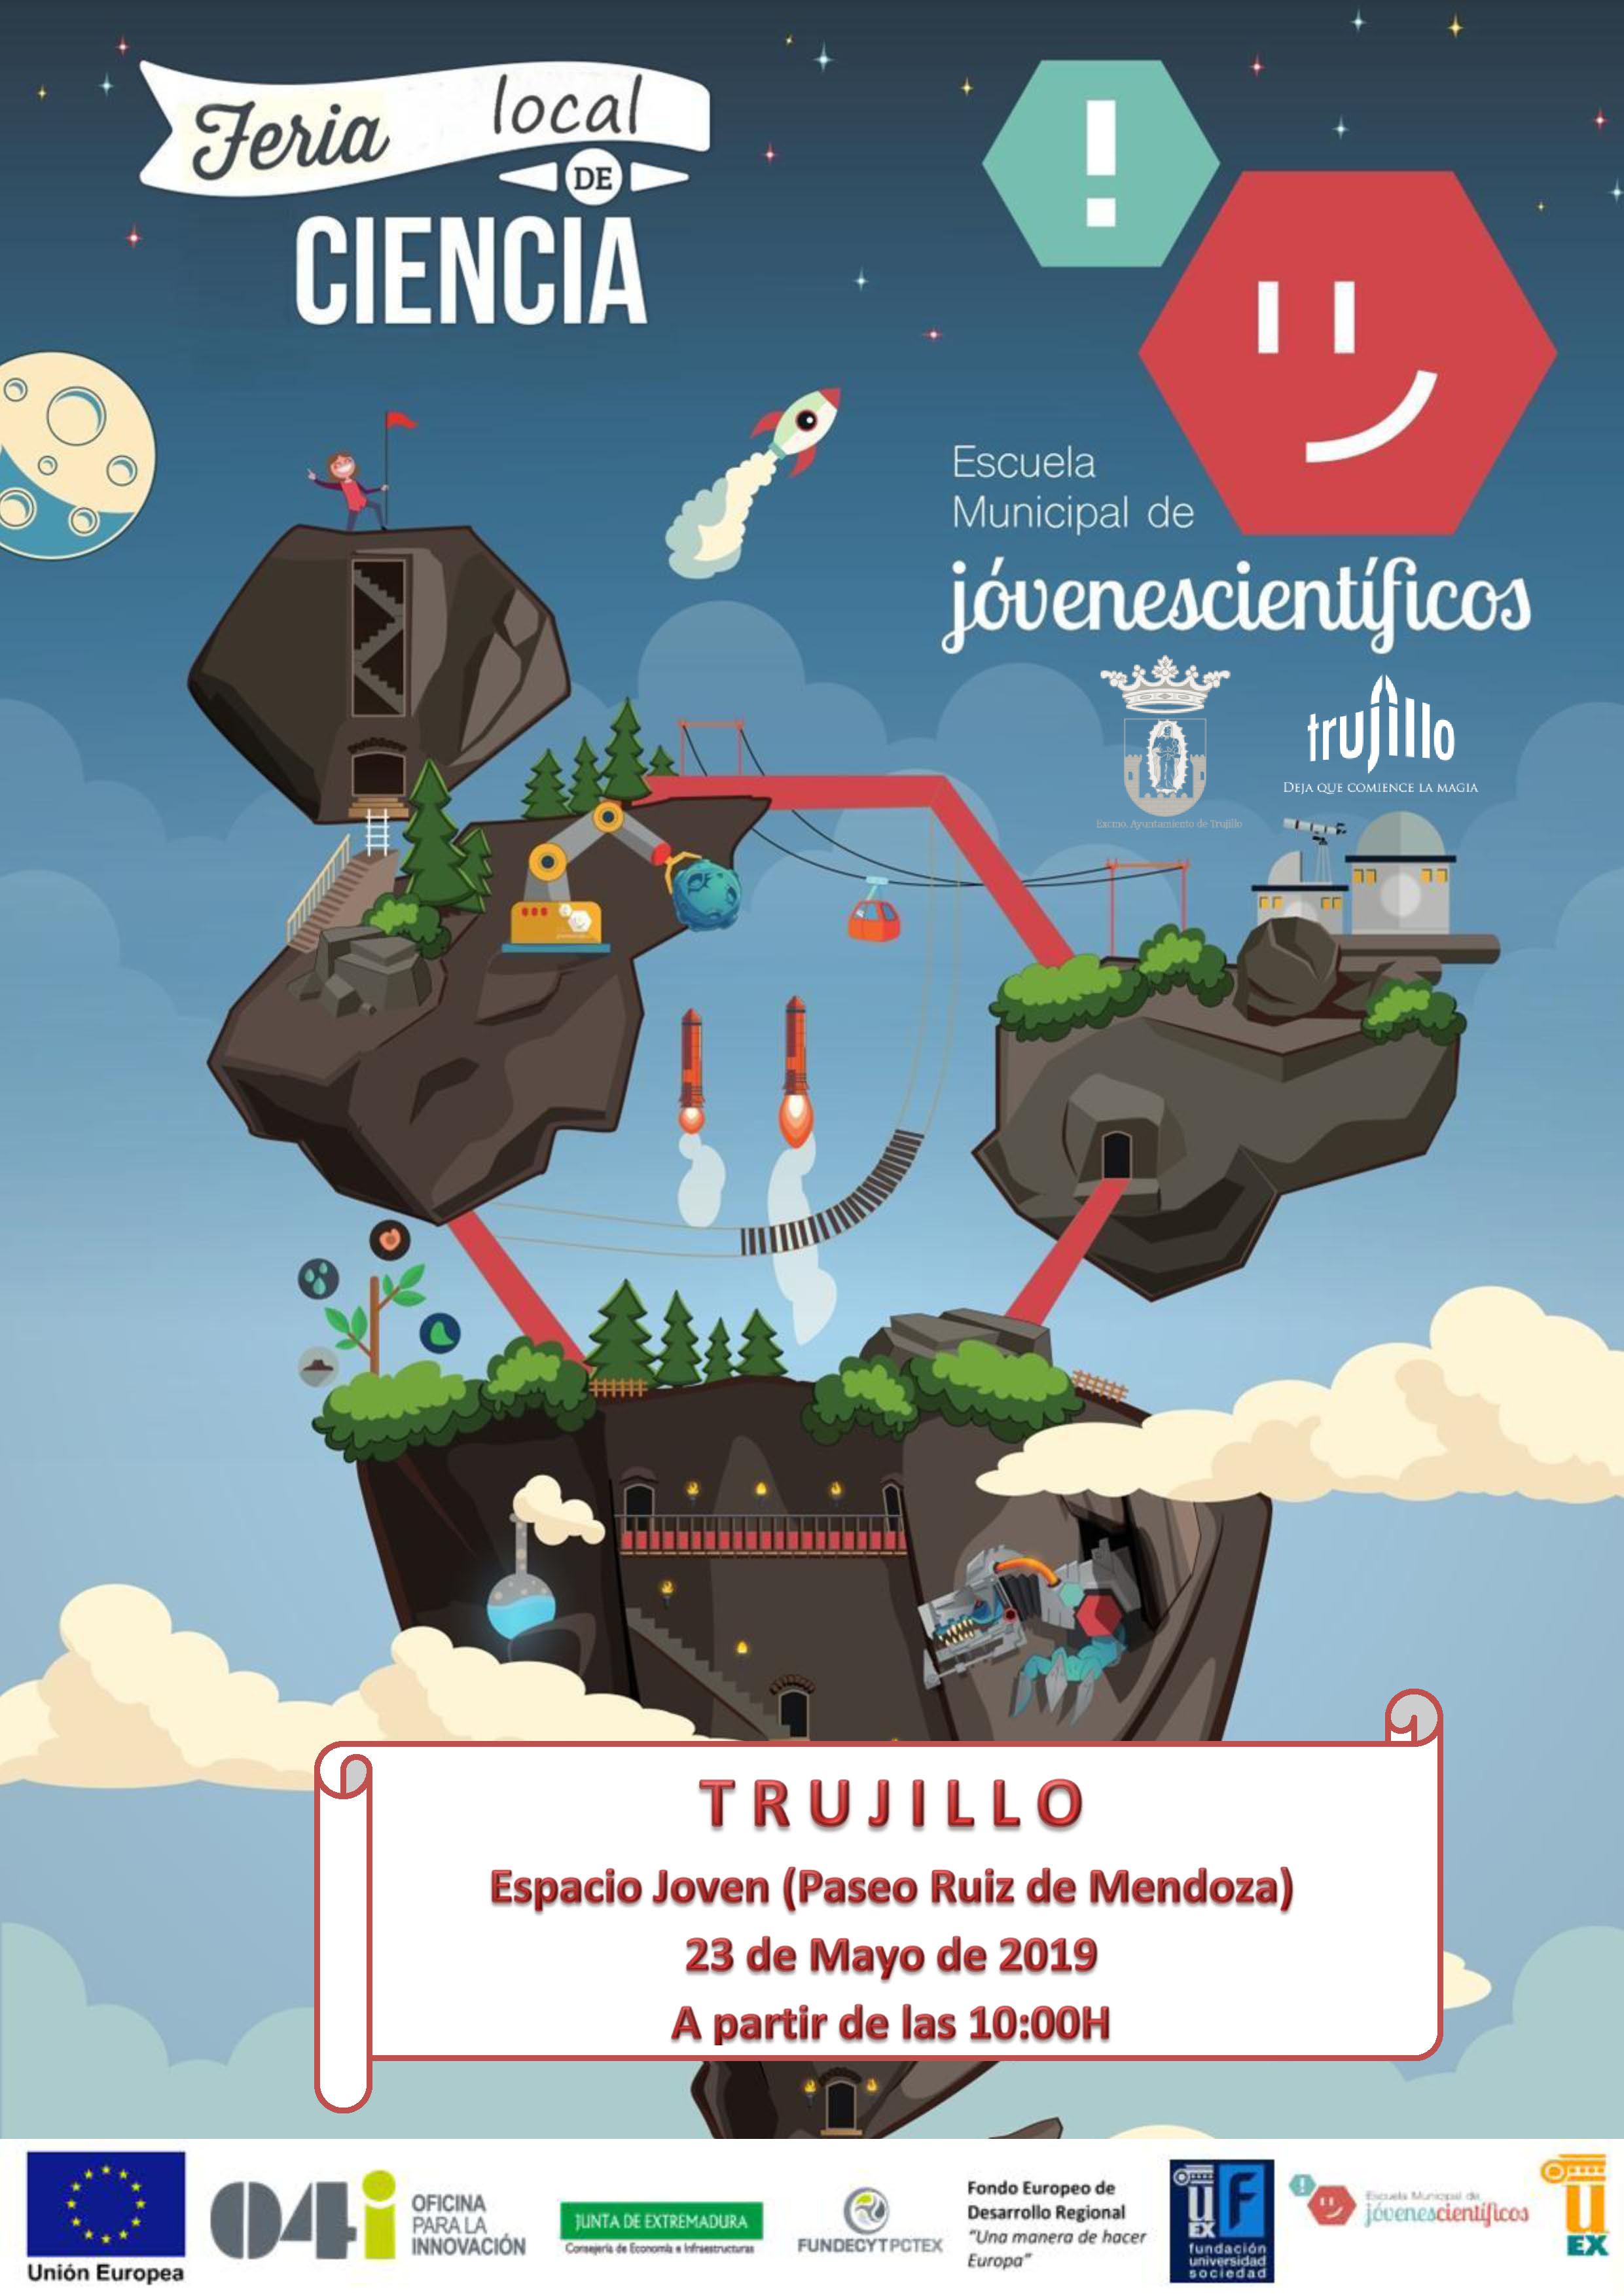 Feria local de ciencia 2019 - Trujillo (Cáceres)